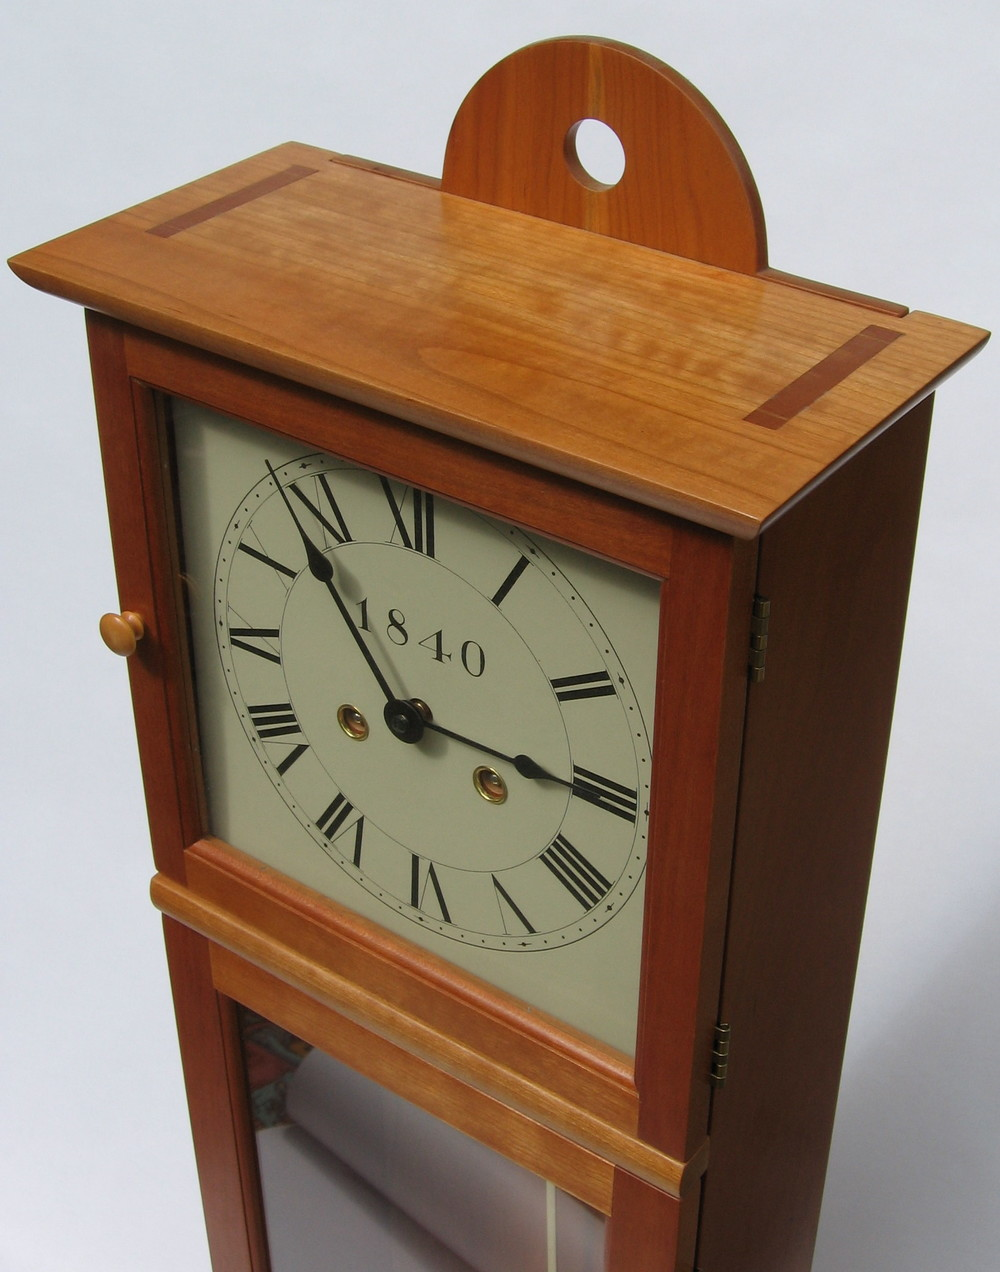 Custom woodworking frank vellone shaker wall clock amipublicfo Image collections